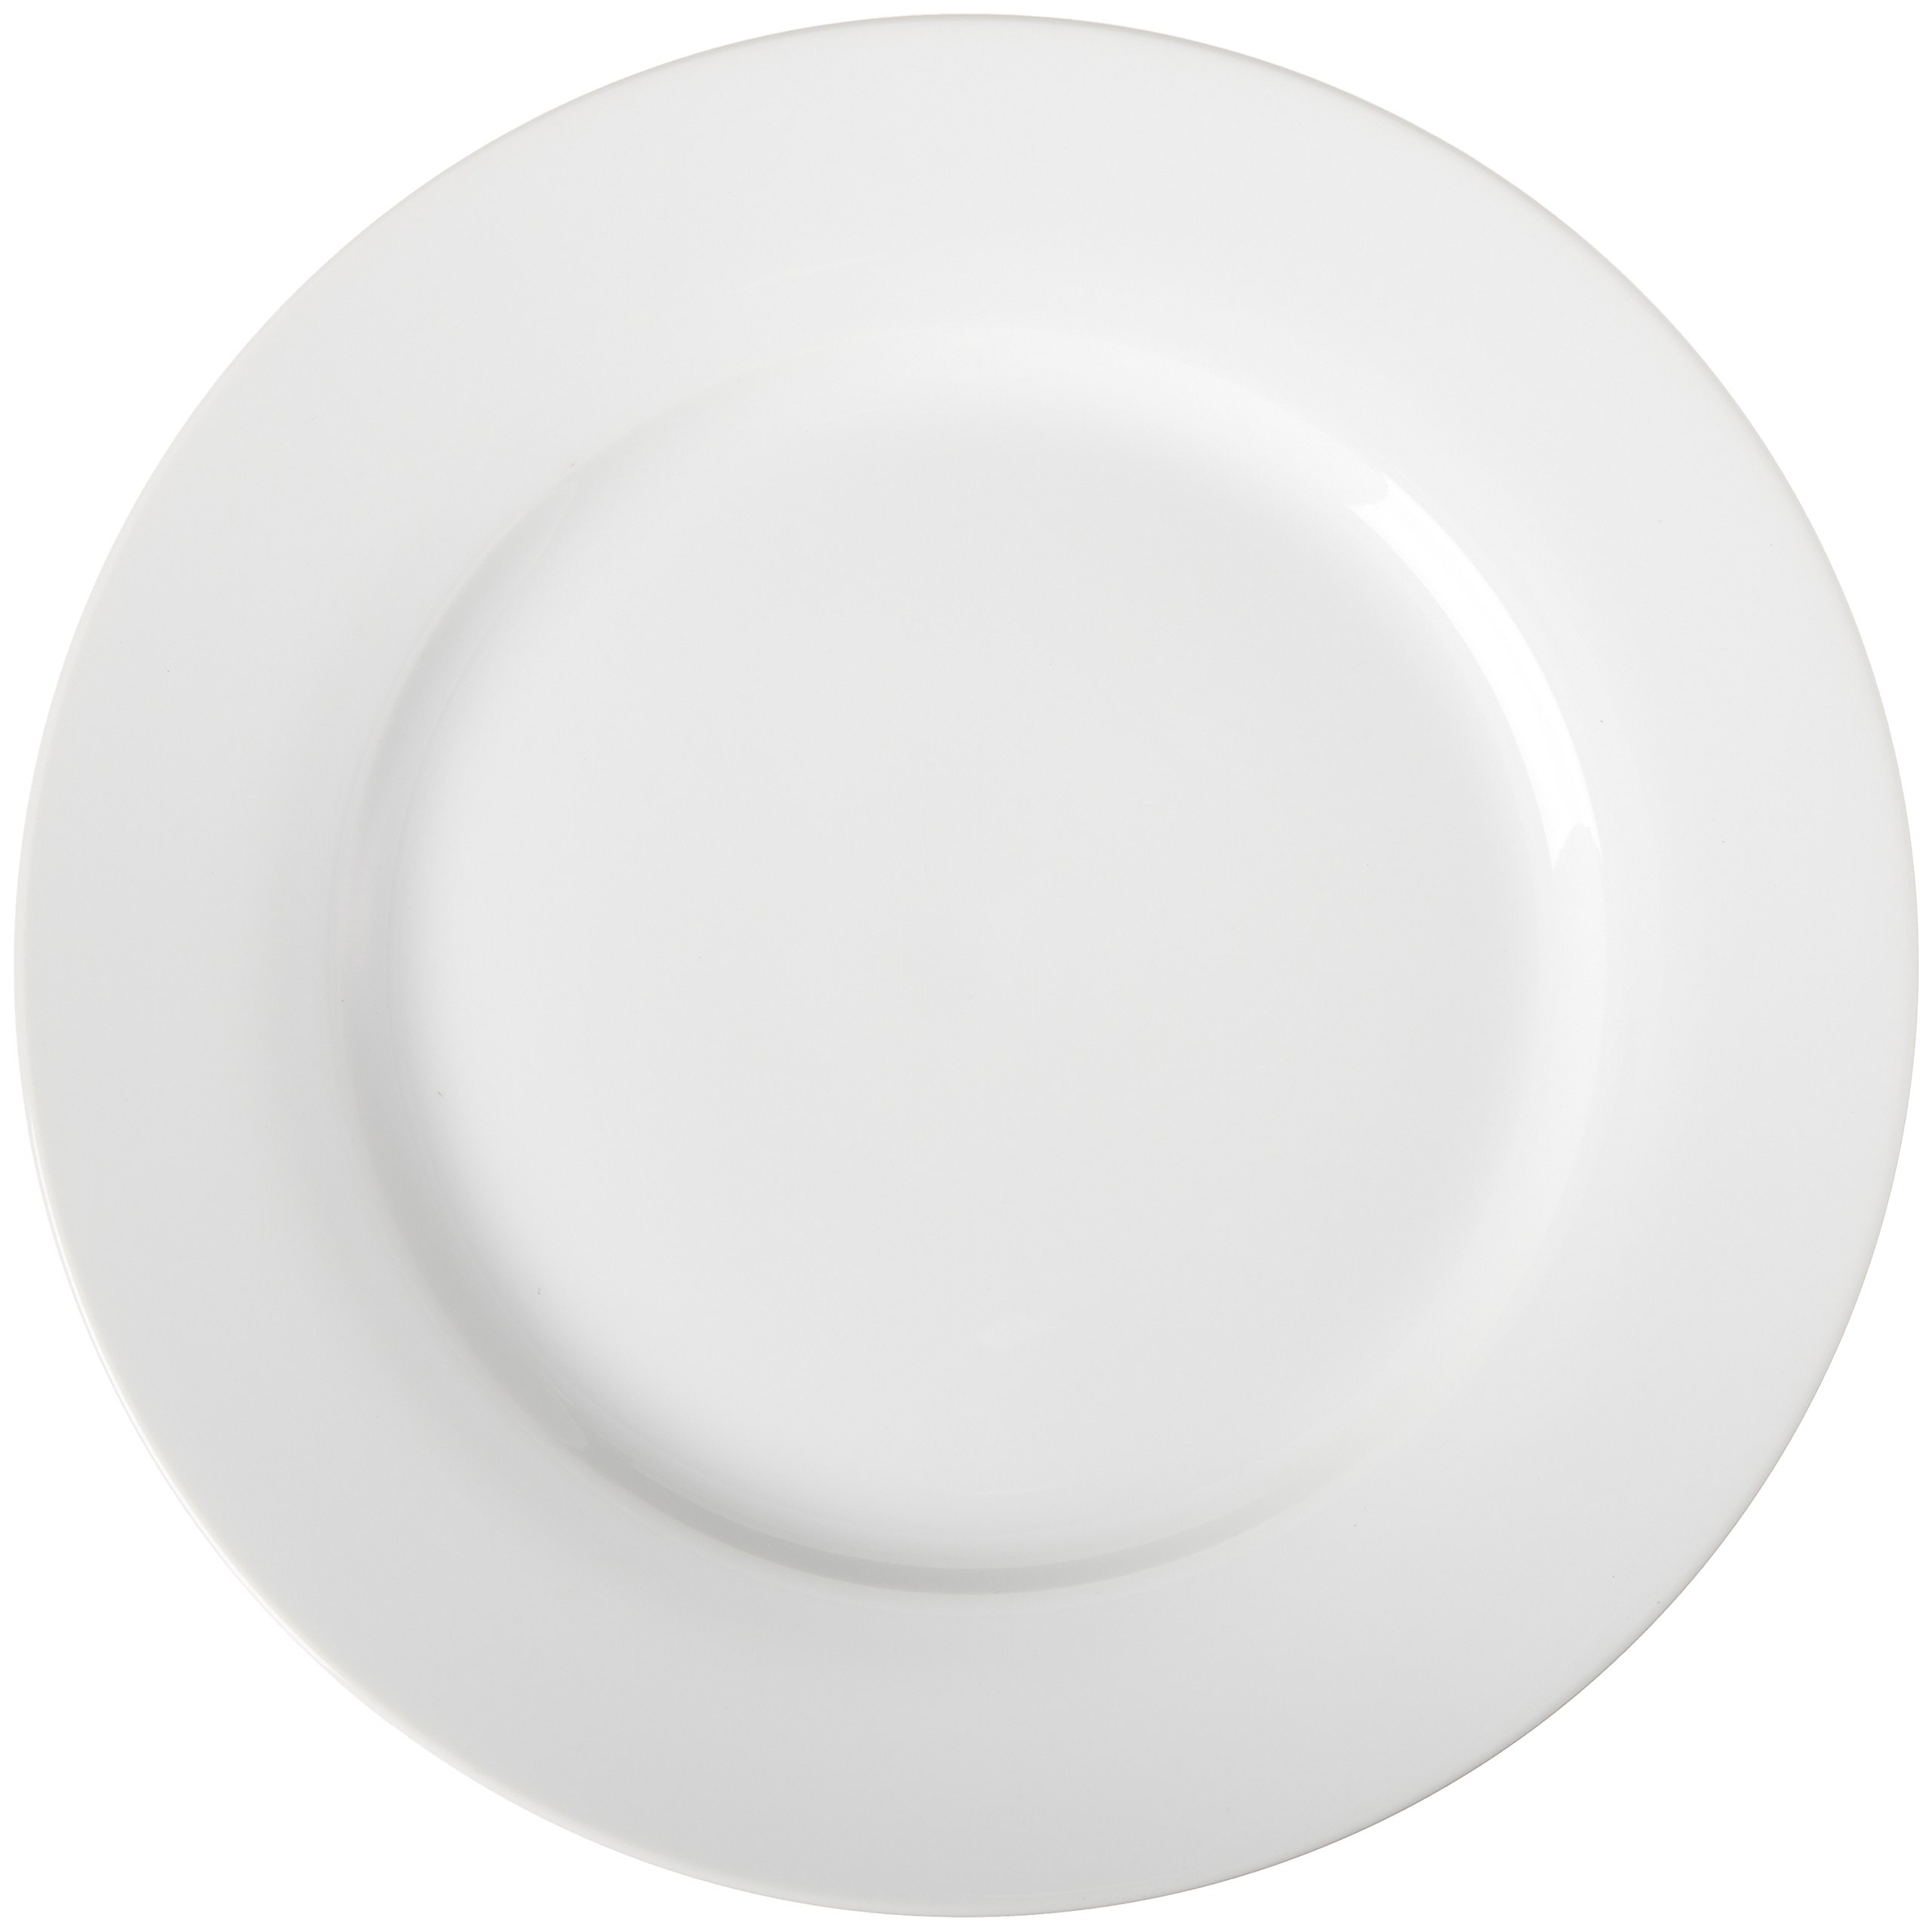 AmazonBasics 6-Piece Dinner Plate Set